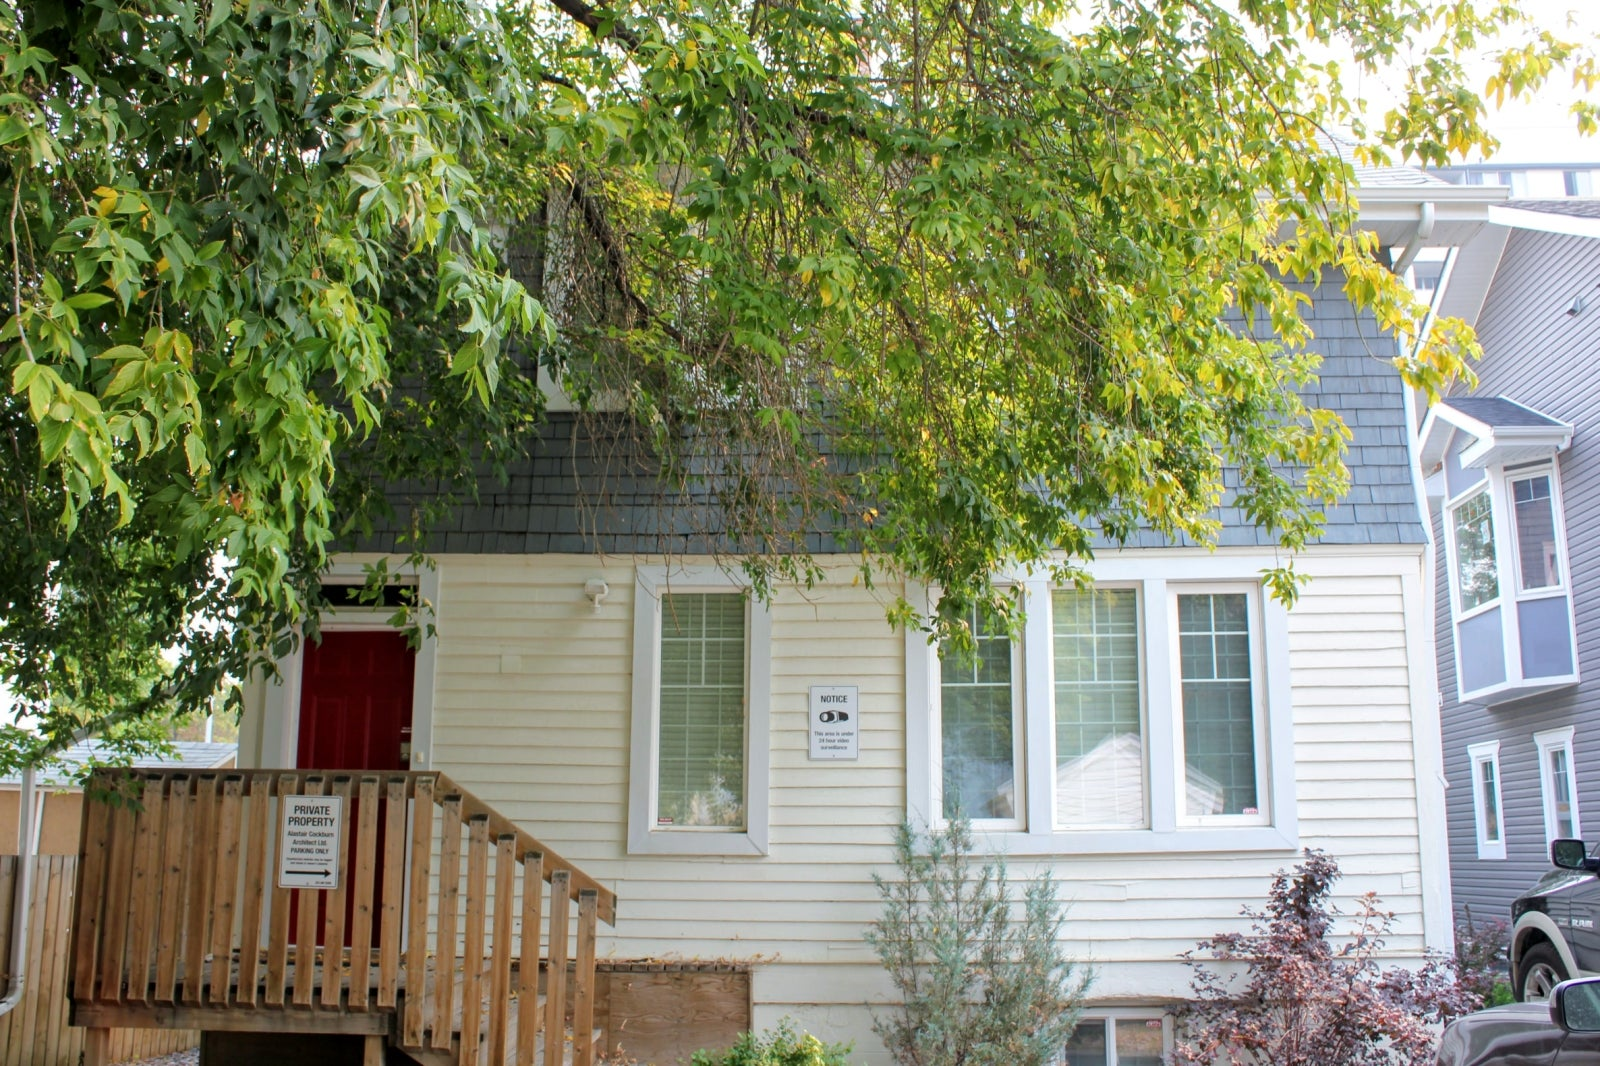 10154 121 ST NW - Oliver COMM for sale, 5 Bedrooms (E4126887) #30